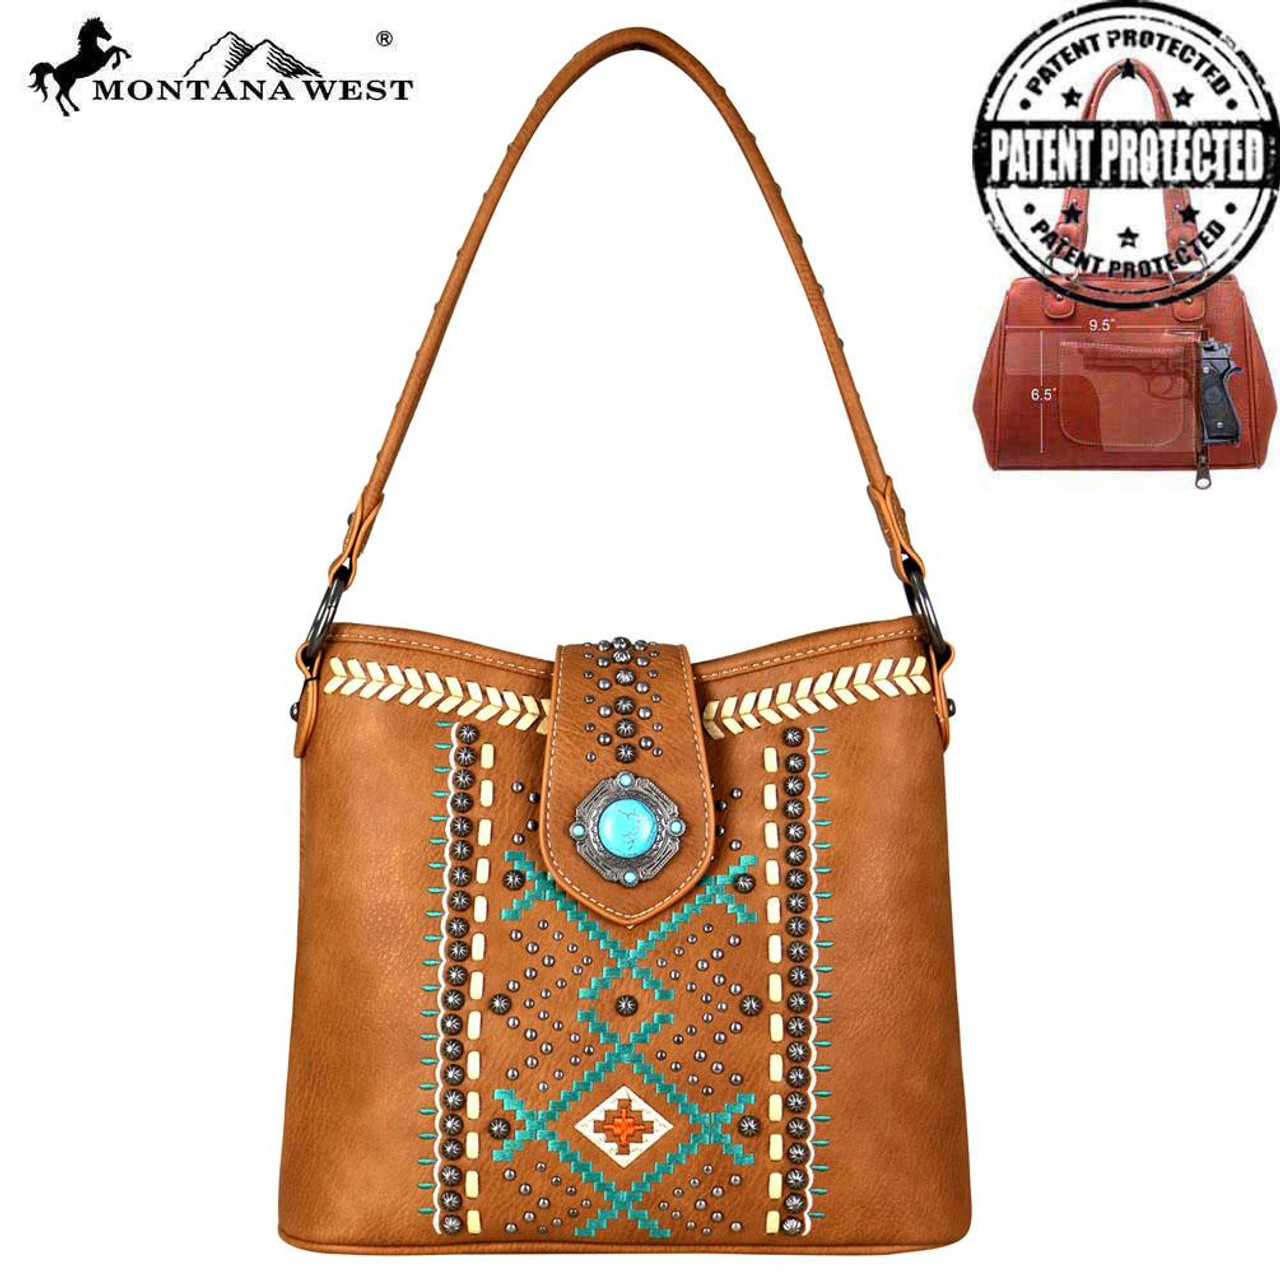 Montana West Aztec Collection Concealed Carry Hobo - Brown - Impact Guns cad2cb248a7cd